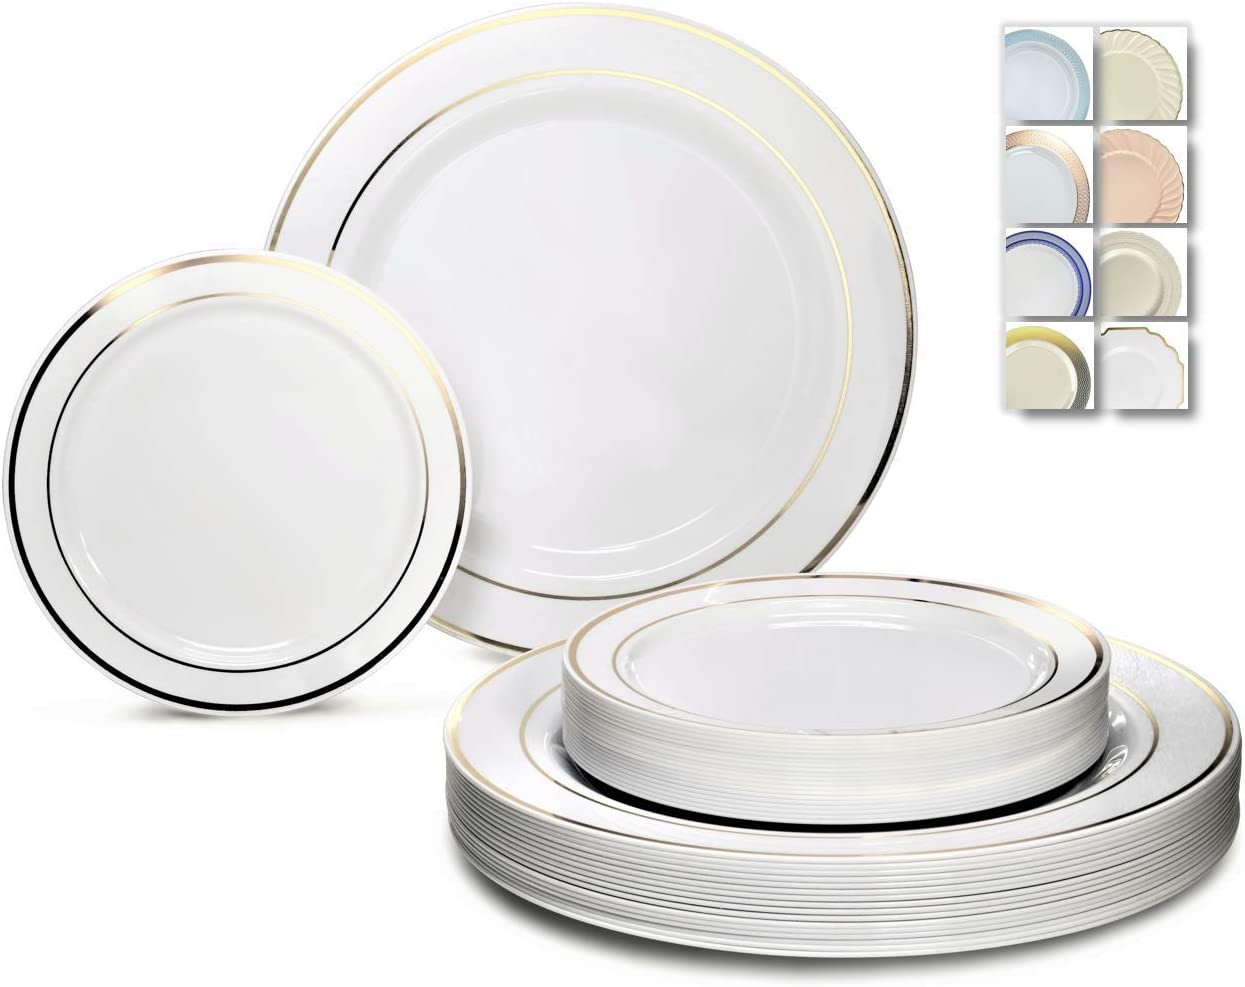 OCCASIONS 240 Plates Pack,(120 Guests) Premium Disposable Plastic Plates Set -120 x 10.5'' Dinner + 120 x 7.5'' Salad/Dessert (White w/Gold Rim)